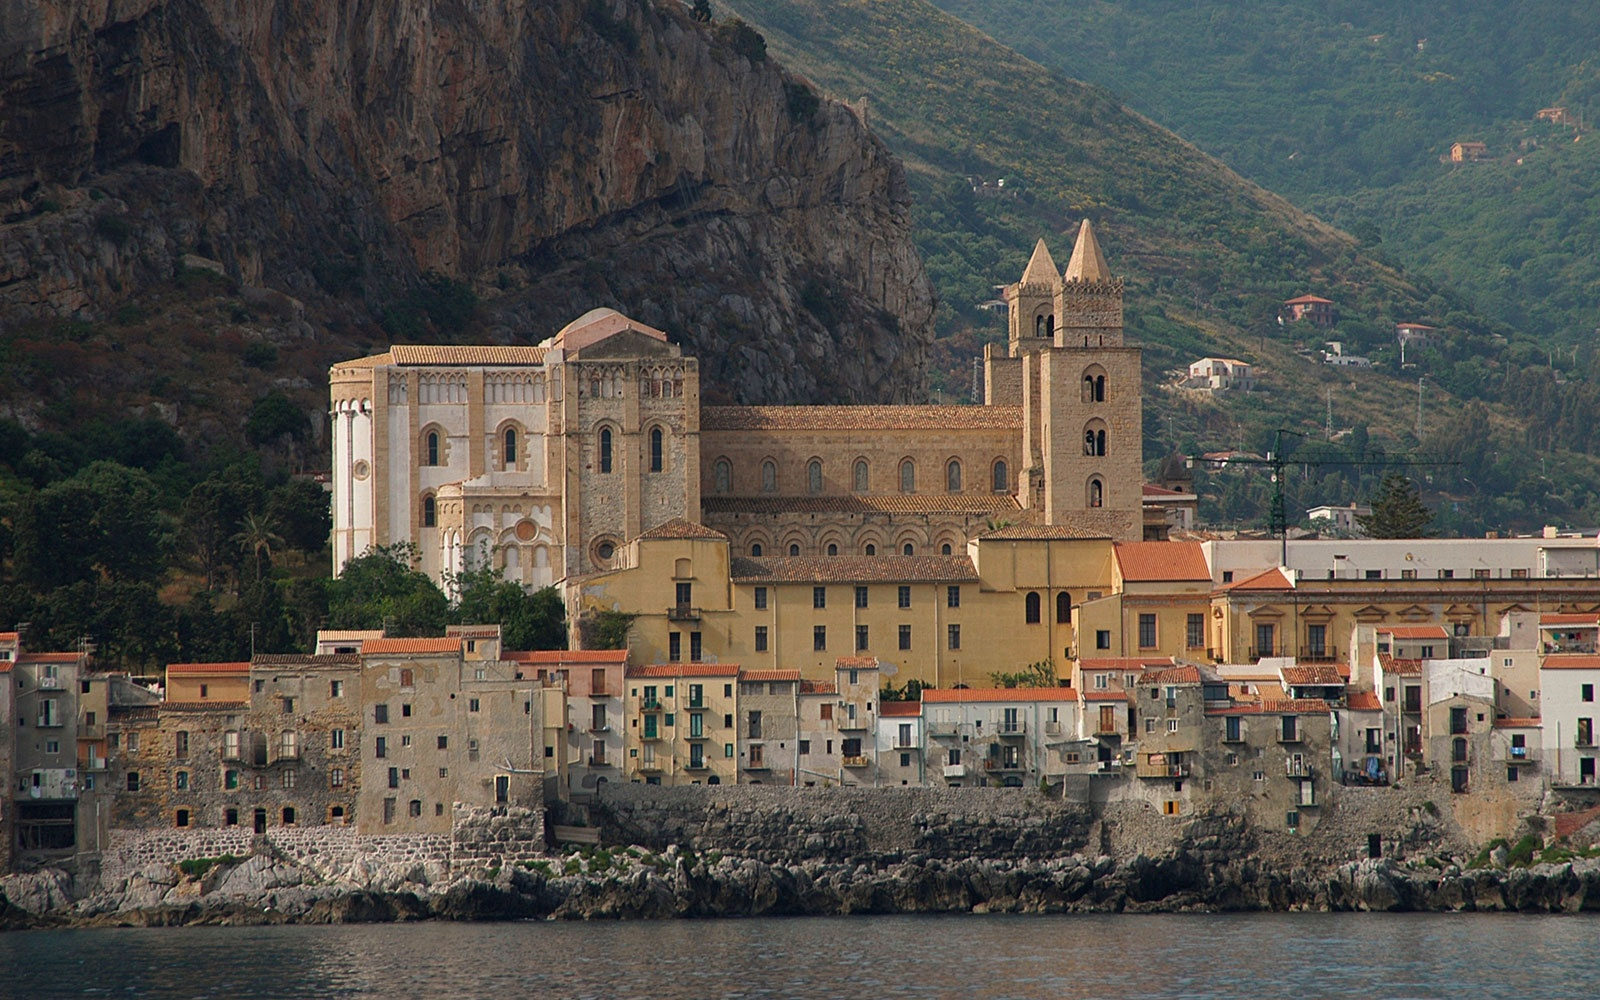 Arab-Norman Palermo and the Cathedral Churches of Cefalu and Monreale, Italy